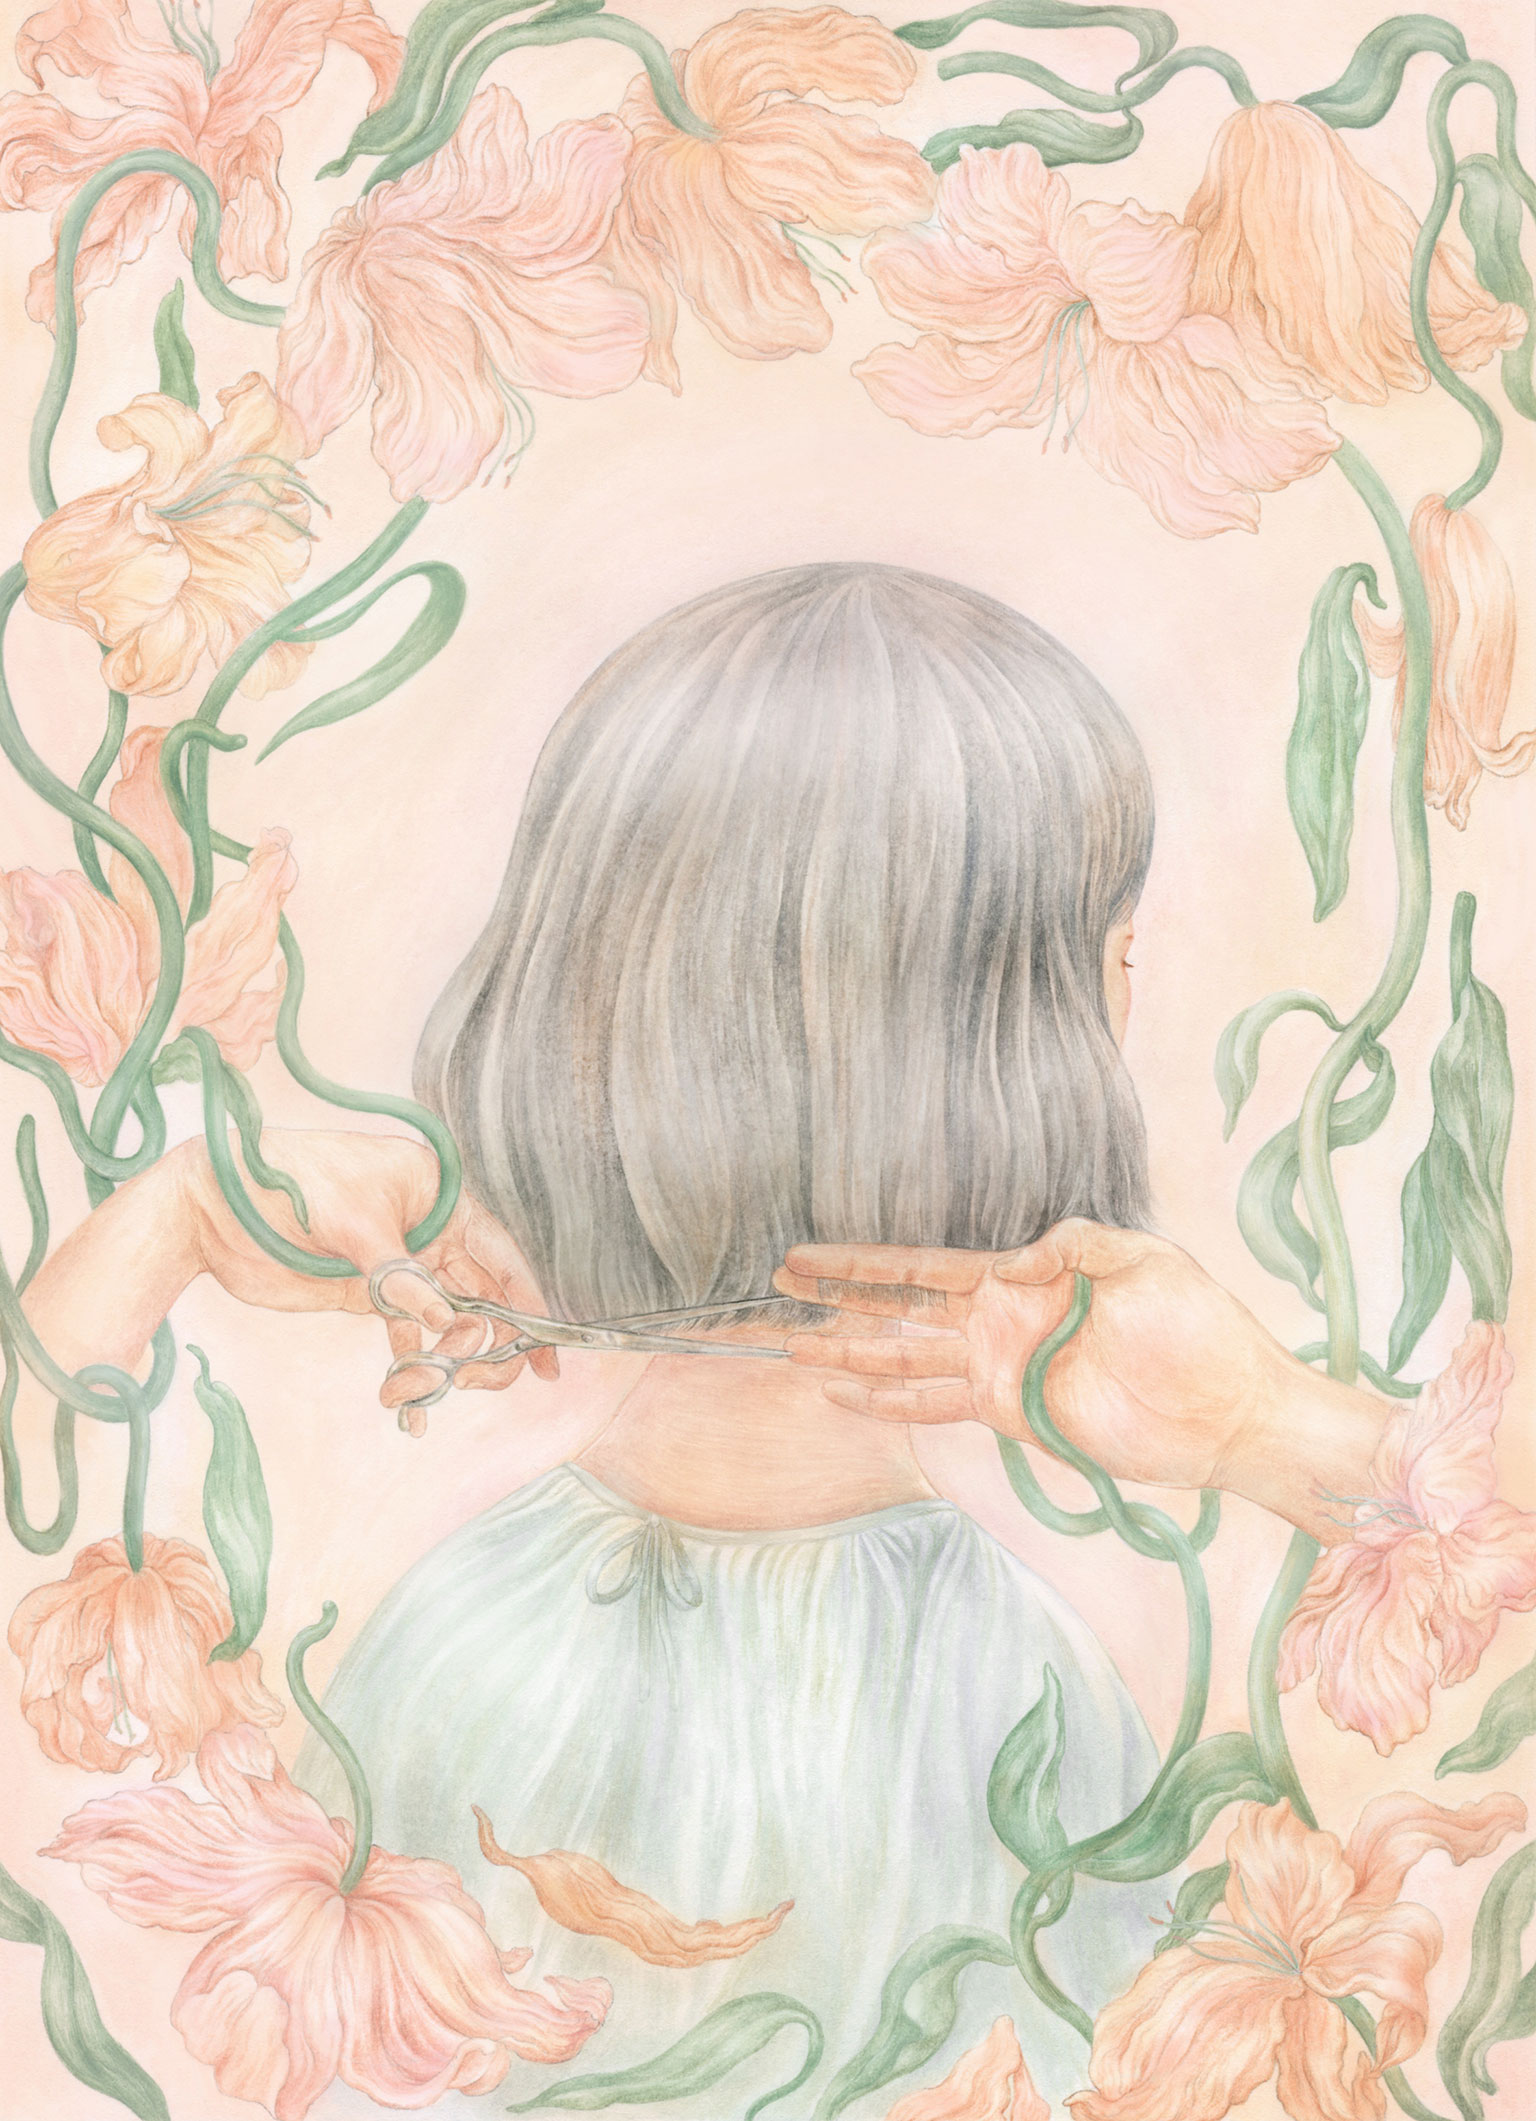 Illustration by Sous Sous